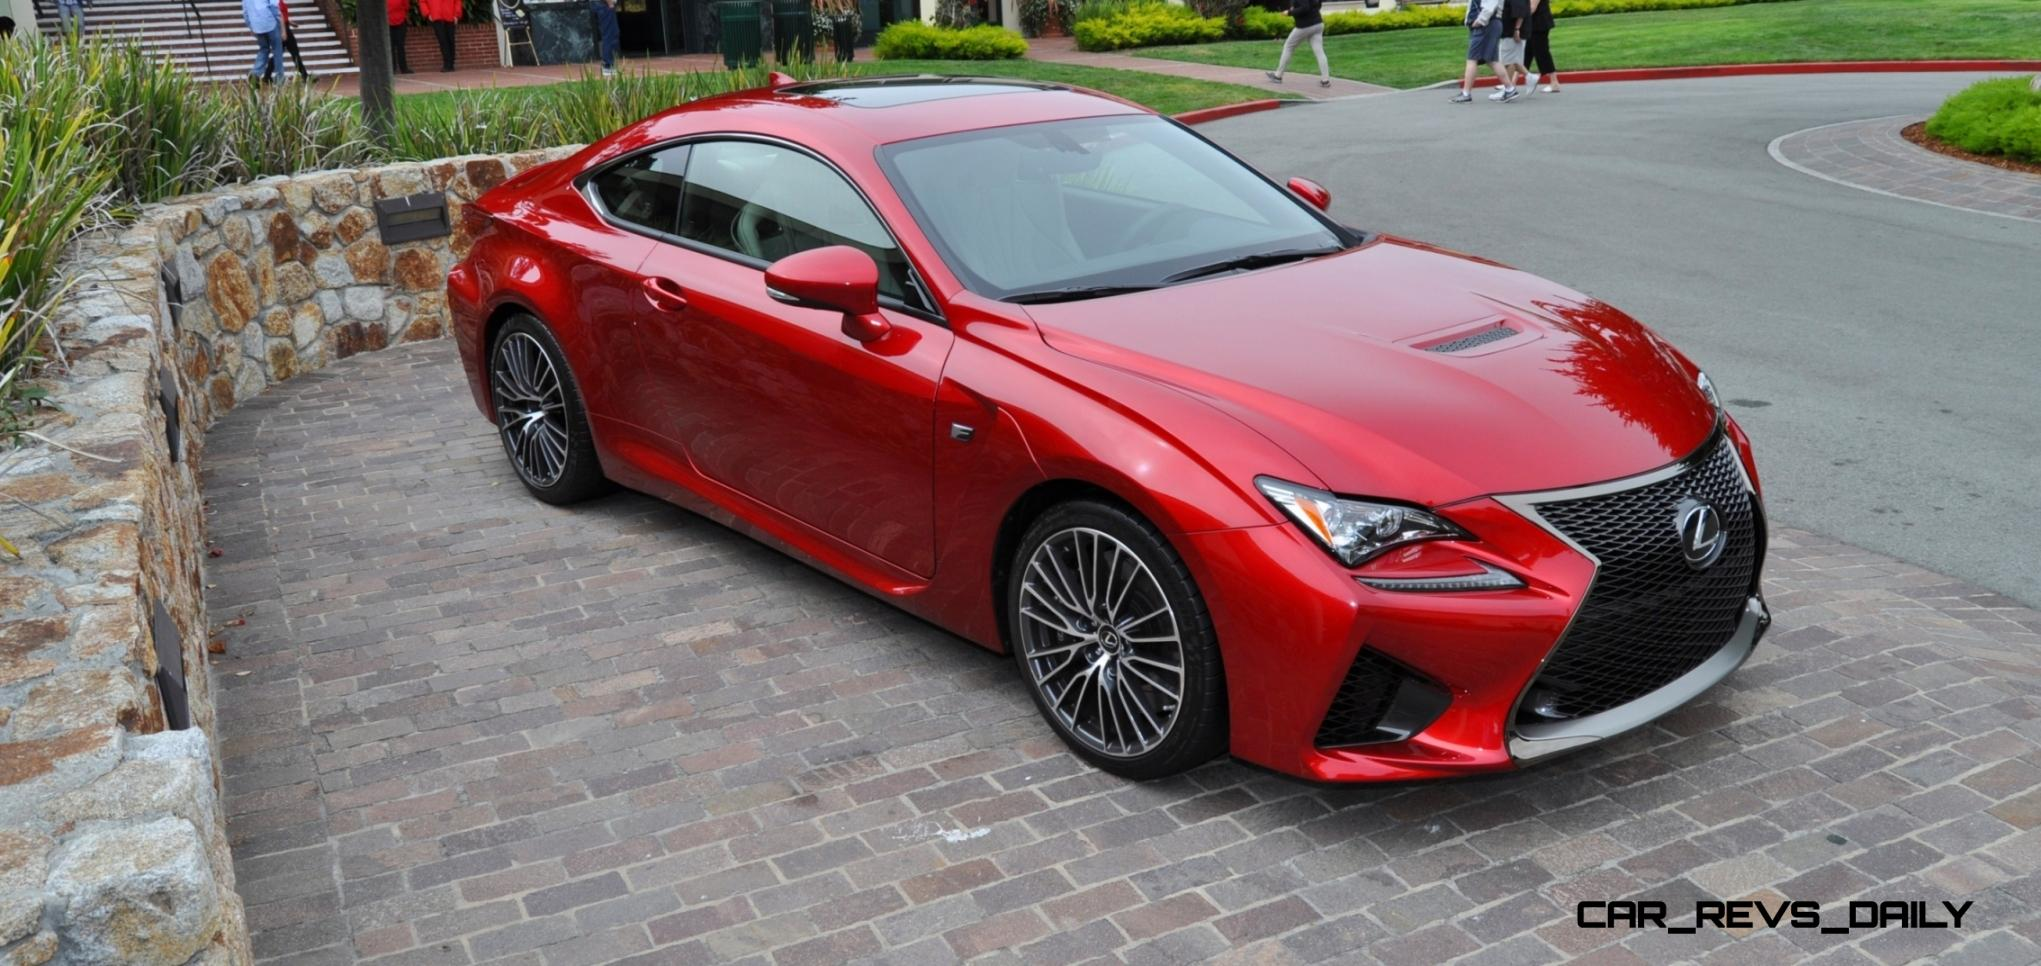 2015 lexus rc f ultra sexy in red flawless animations 122 photos. Black Bedroom Furniture Sets. Home Design Ideas